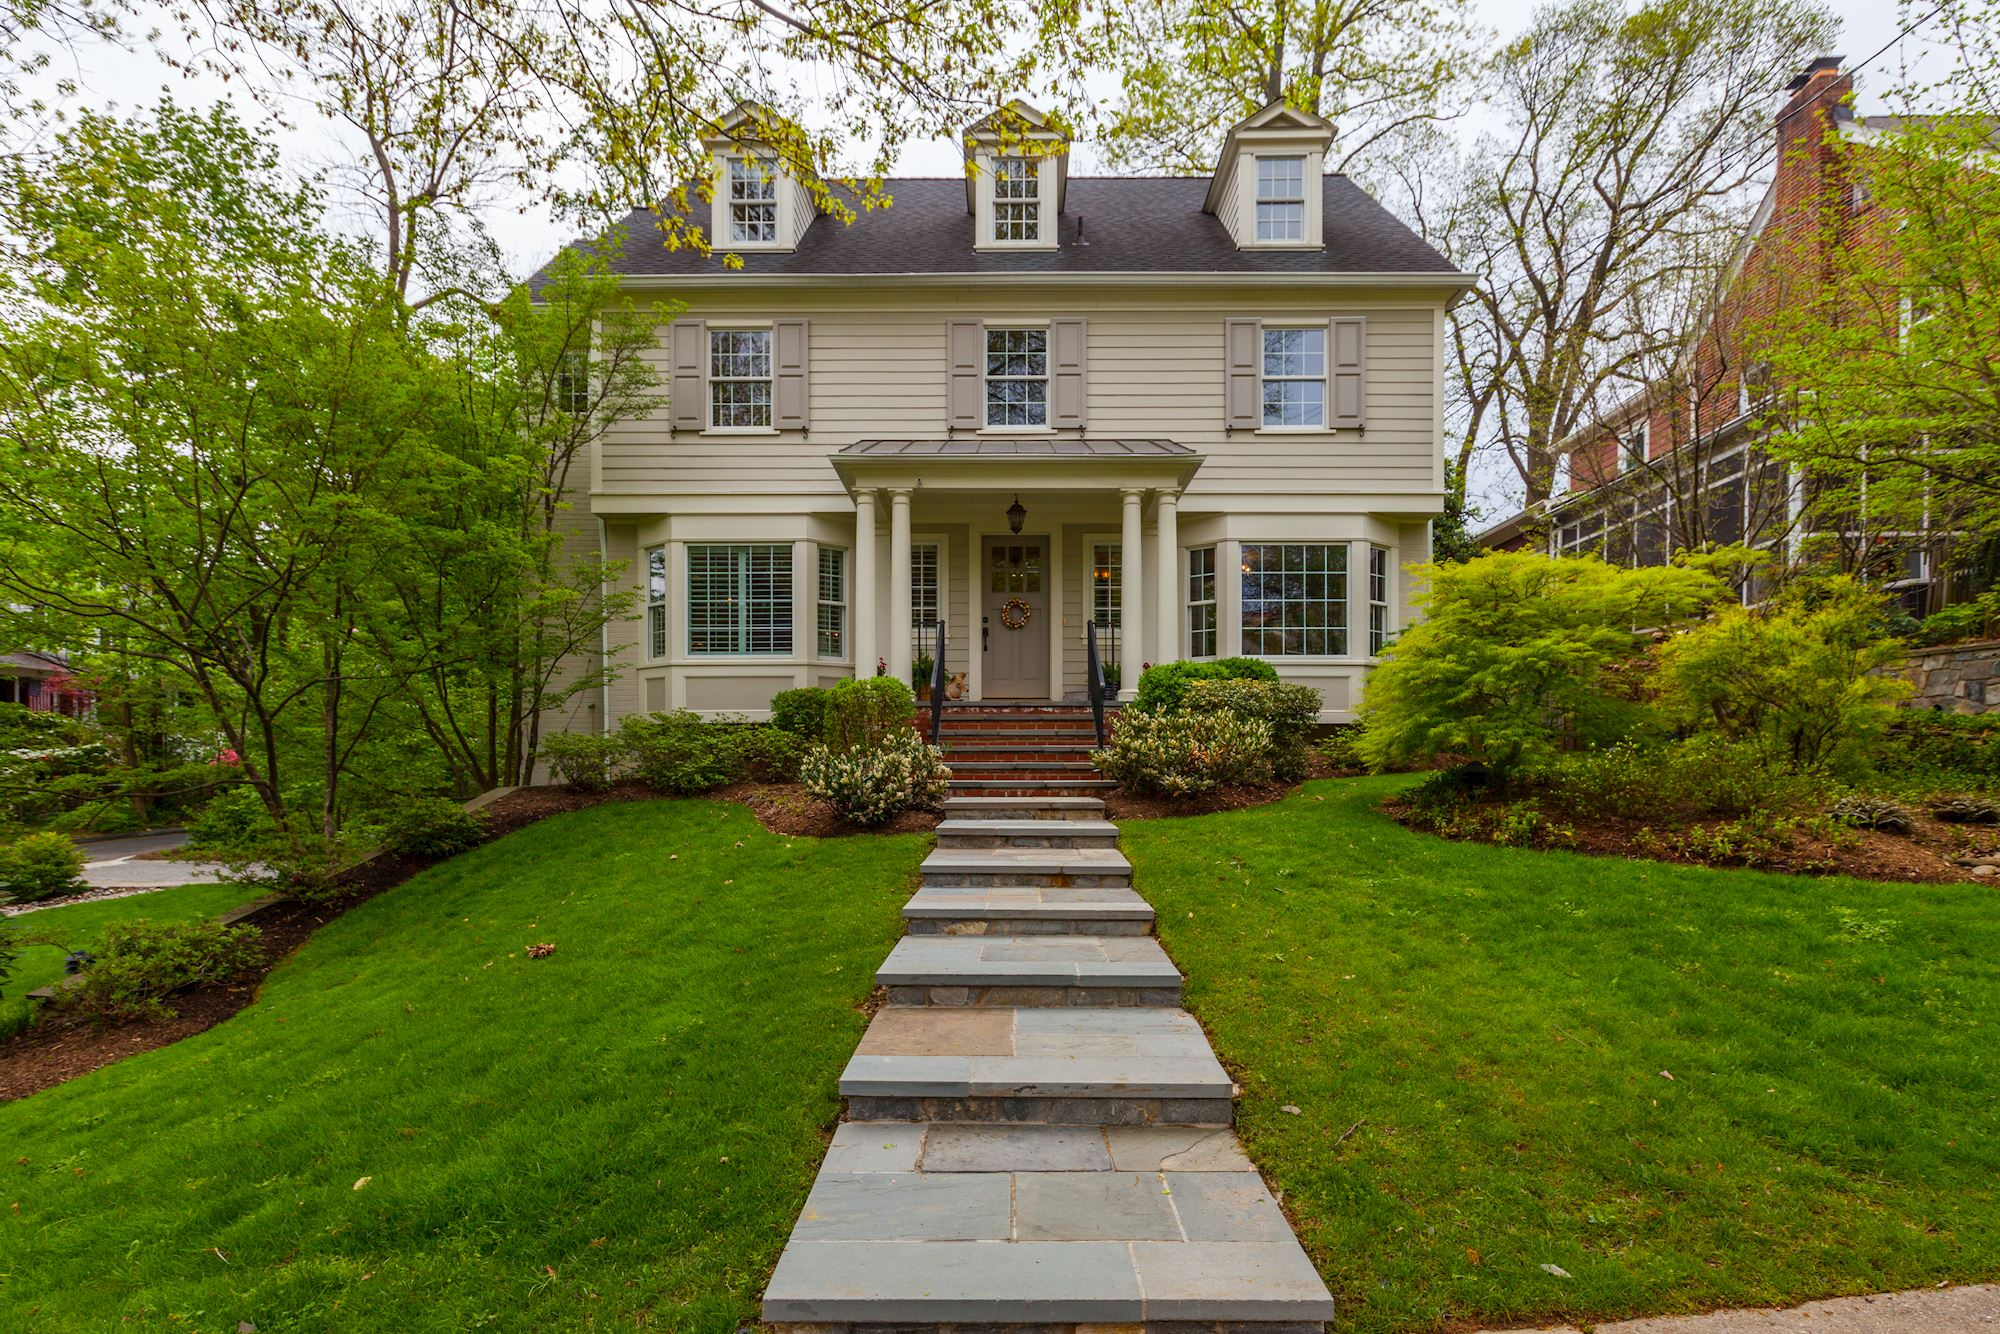 Featured Neighborhood: Chevy Chase